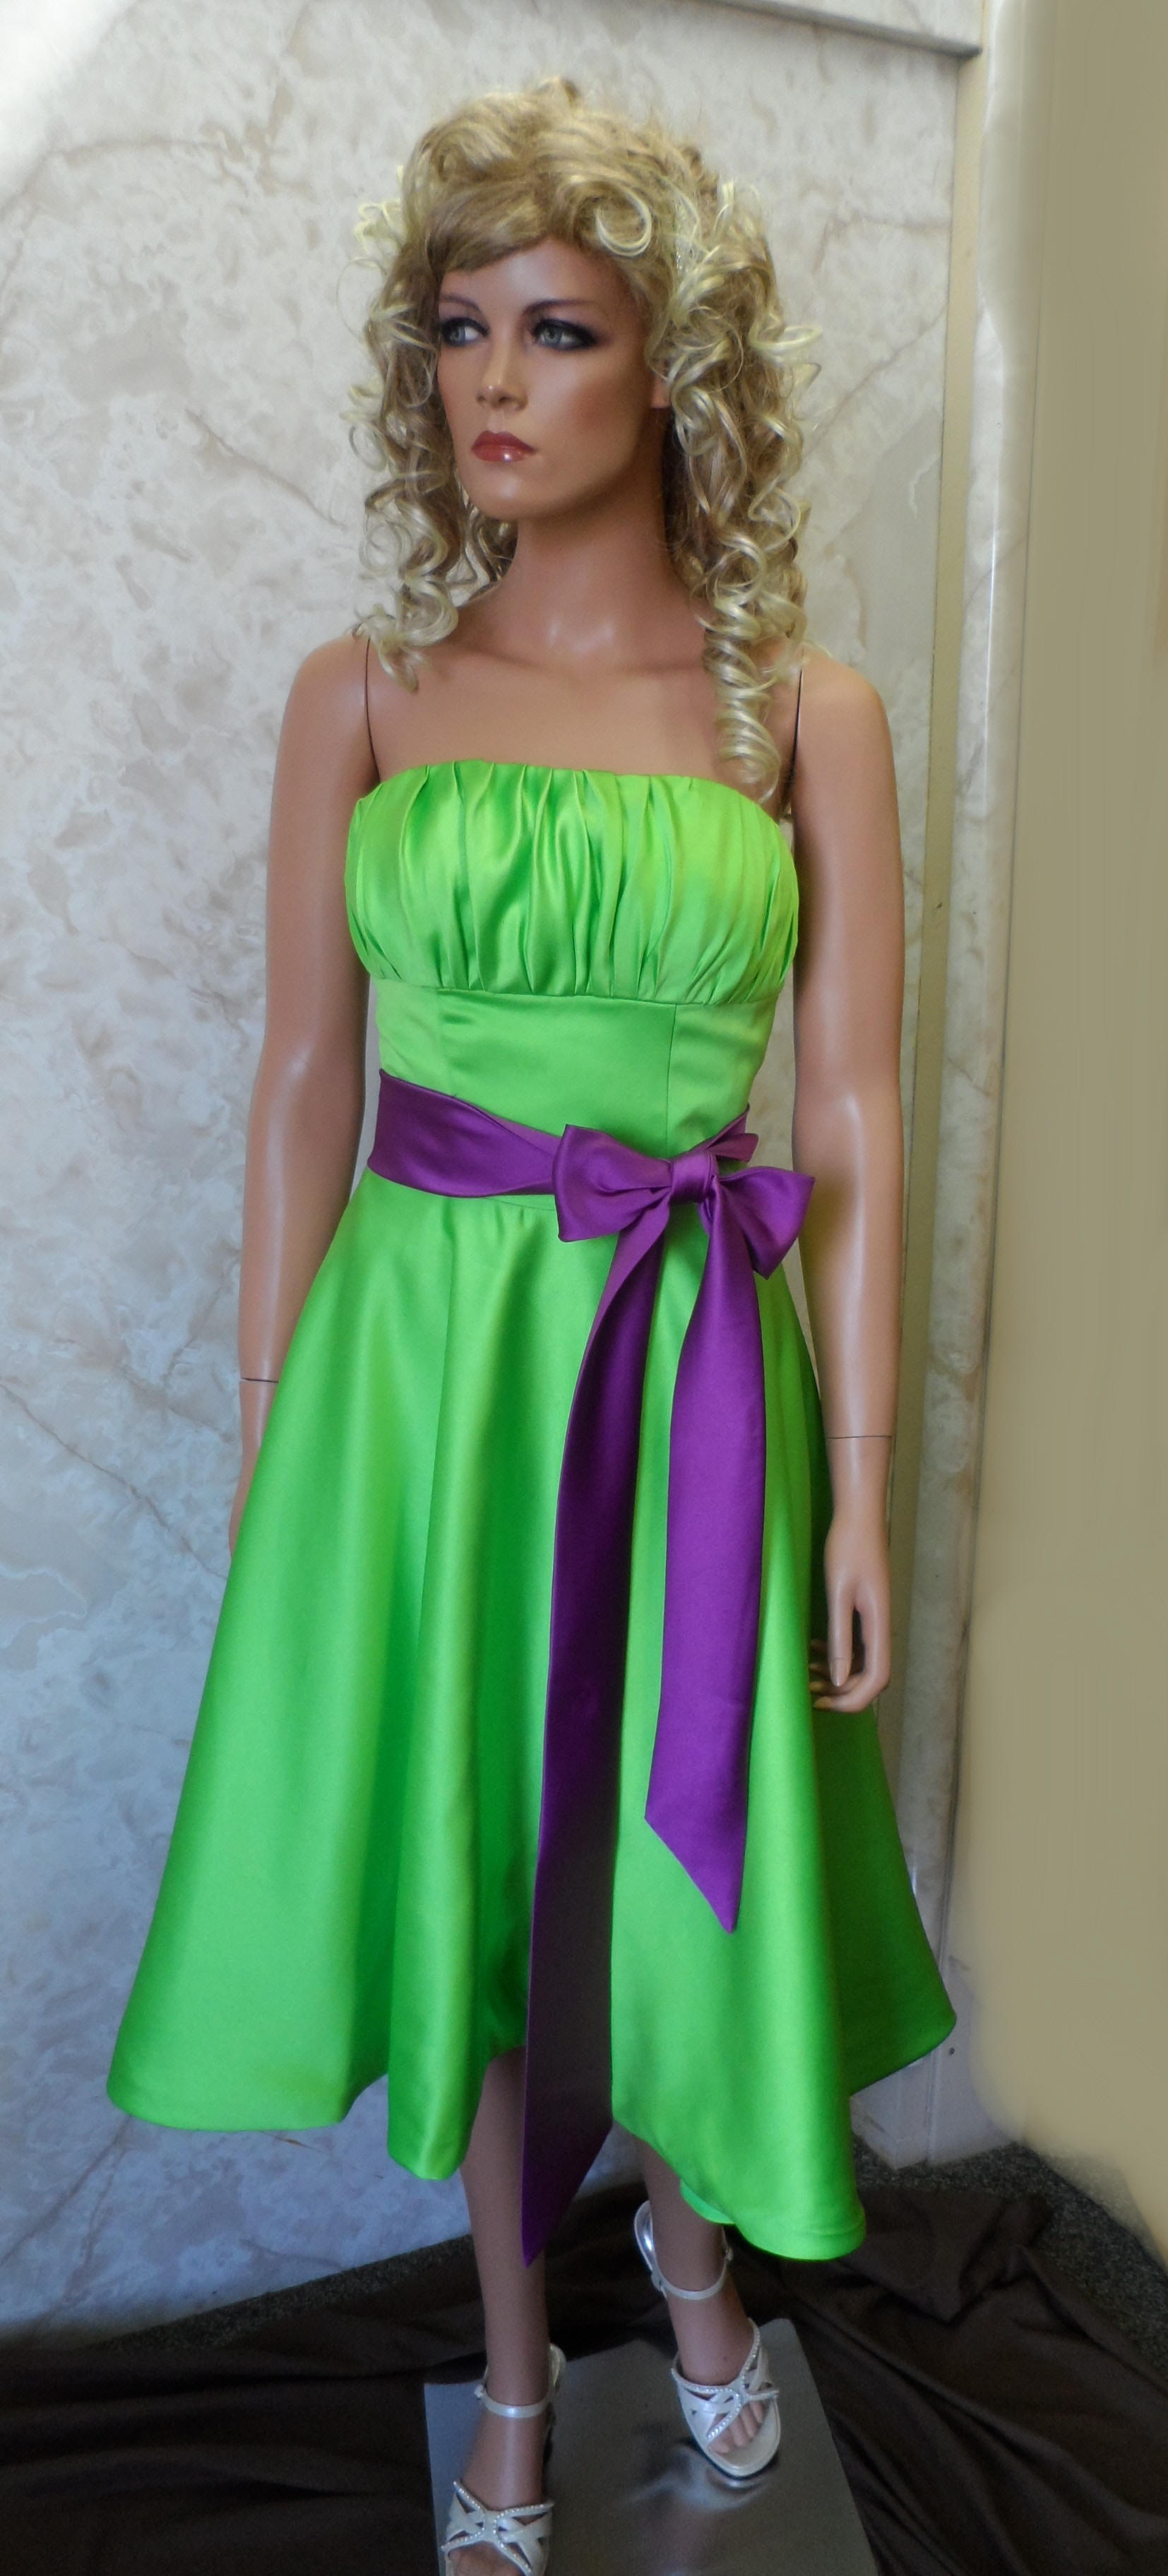 Green bridesmaid dresses short green bridesmaid dress with purple sash ombrellifo Image collections